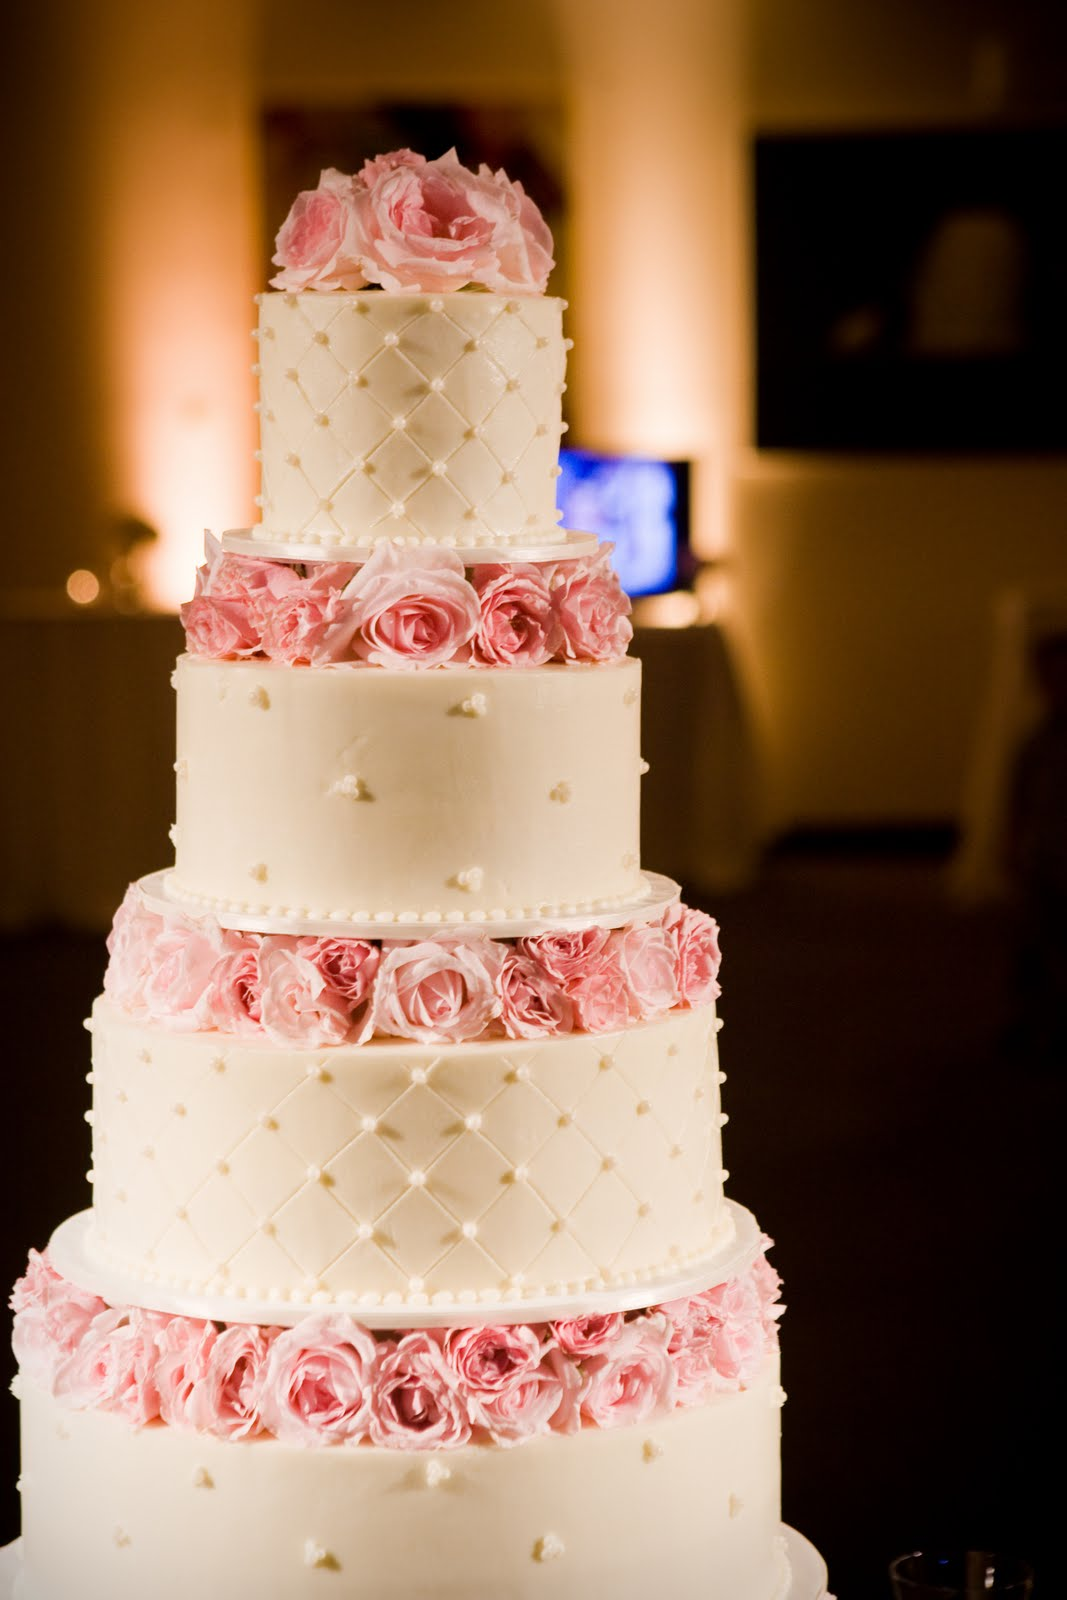 ludger s wedding cakes tulsa tulsa weddings and design 16962